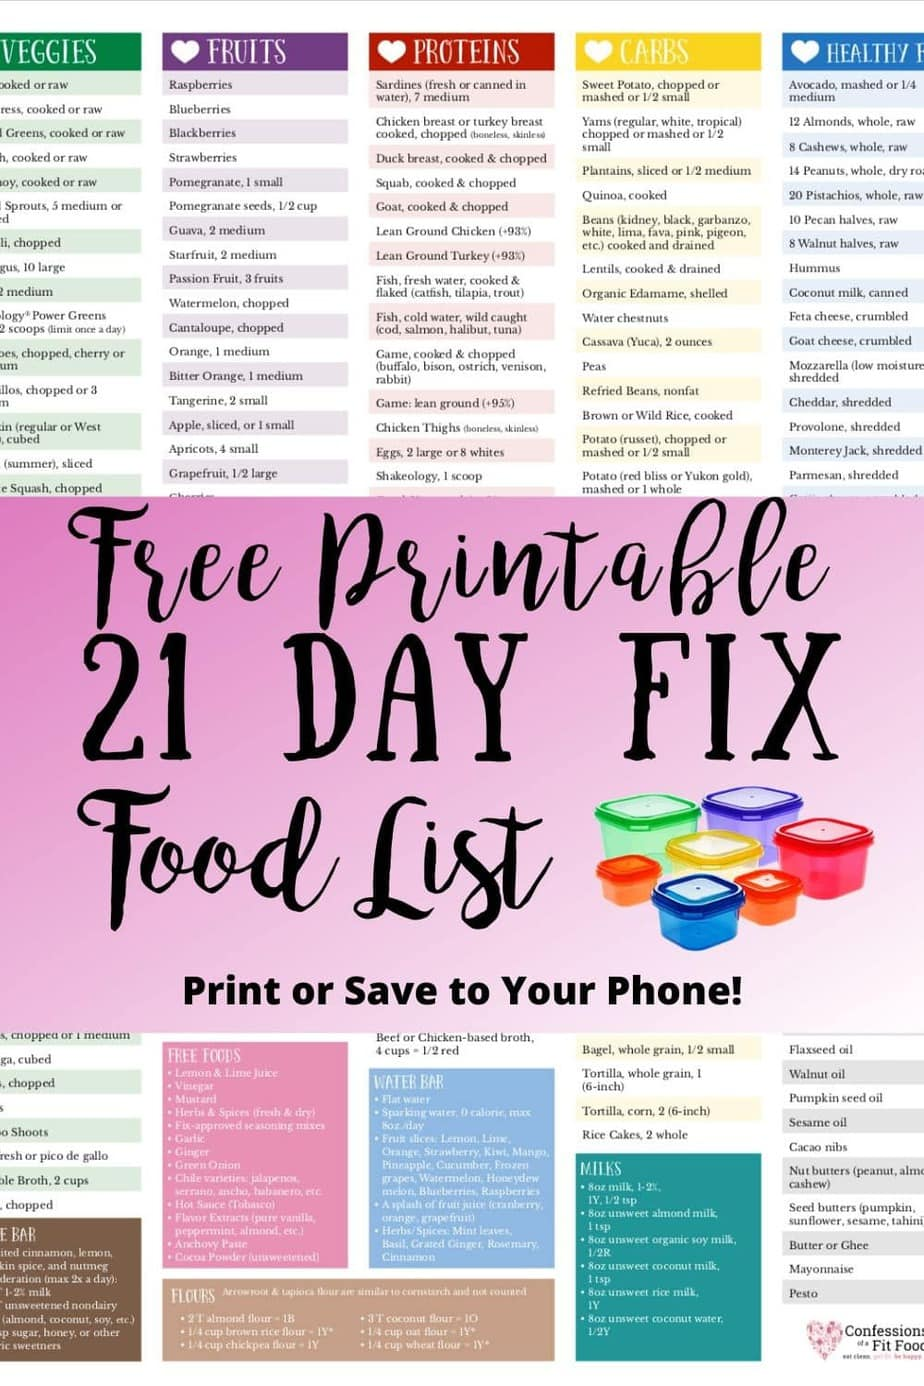 Updated 21 Day Fix Food List Free Printable Confessions Of A Fit Foodie